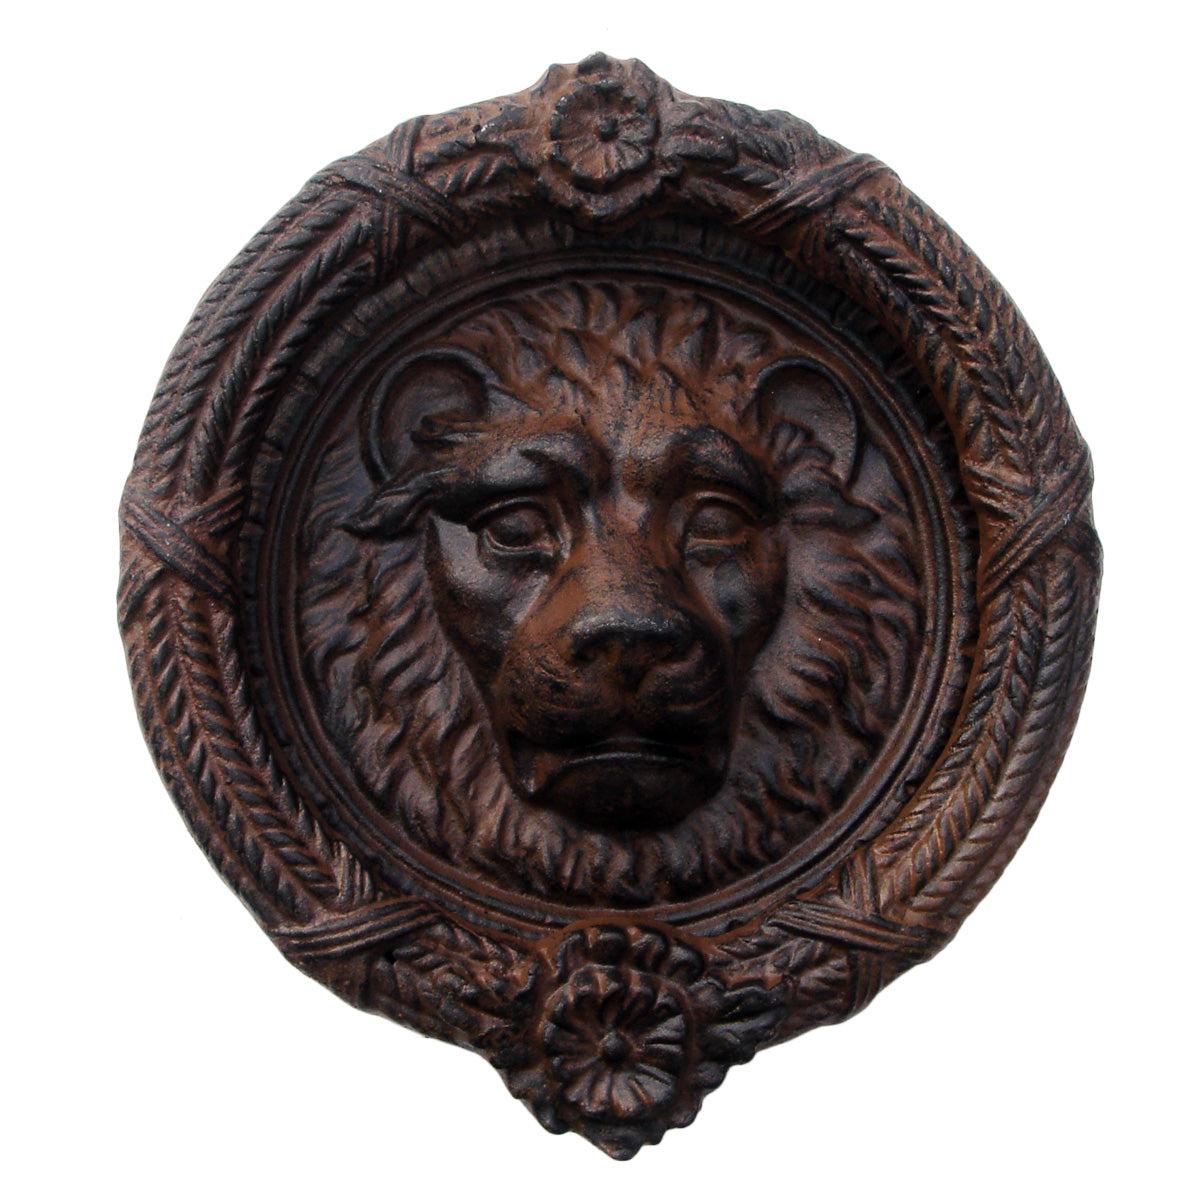 Antique-Style Cast Iron Lion's Head Door Knocker - Antique-Style Cast Iron Lion's Head Door Knocker TreasureGurus